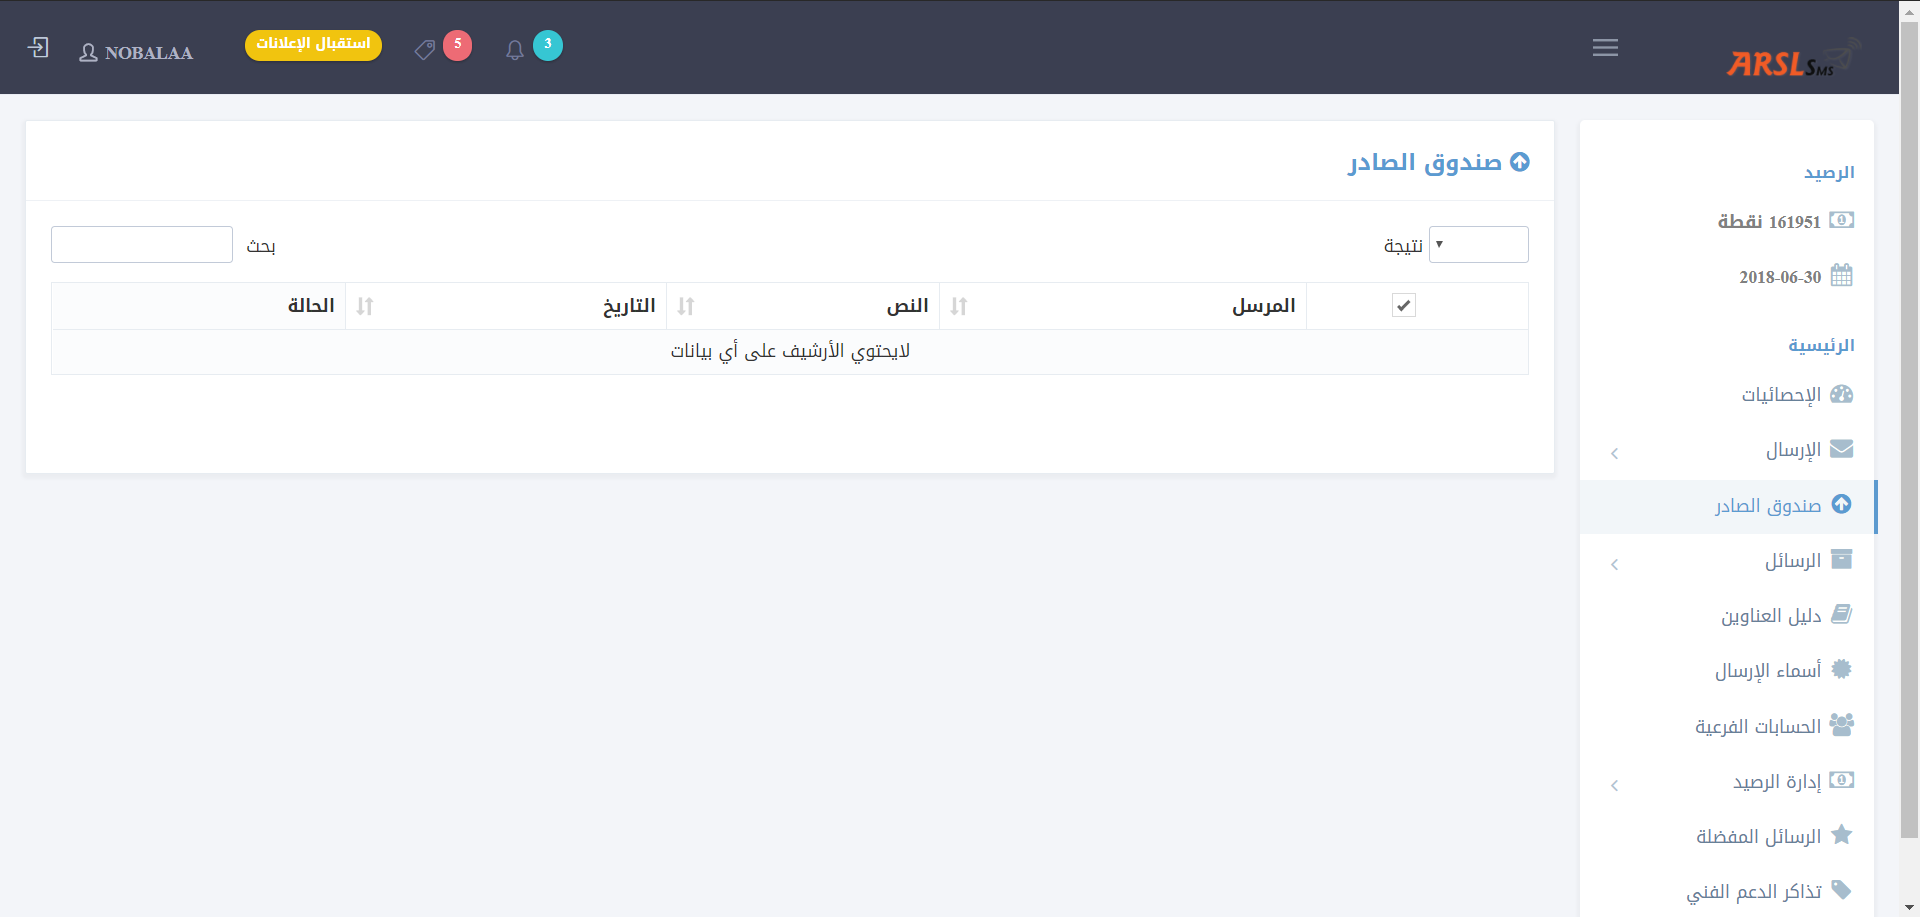 nobalaa-sms-script-sms-outbox